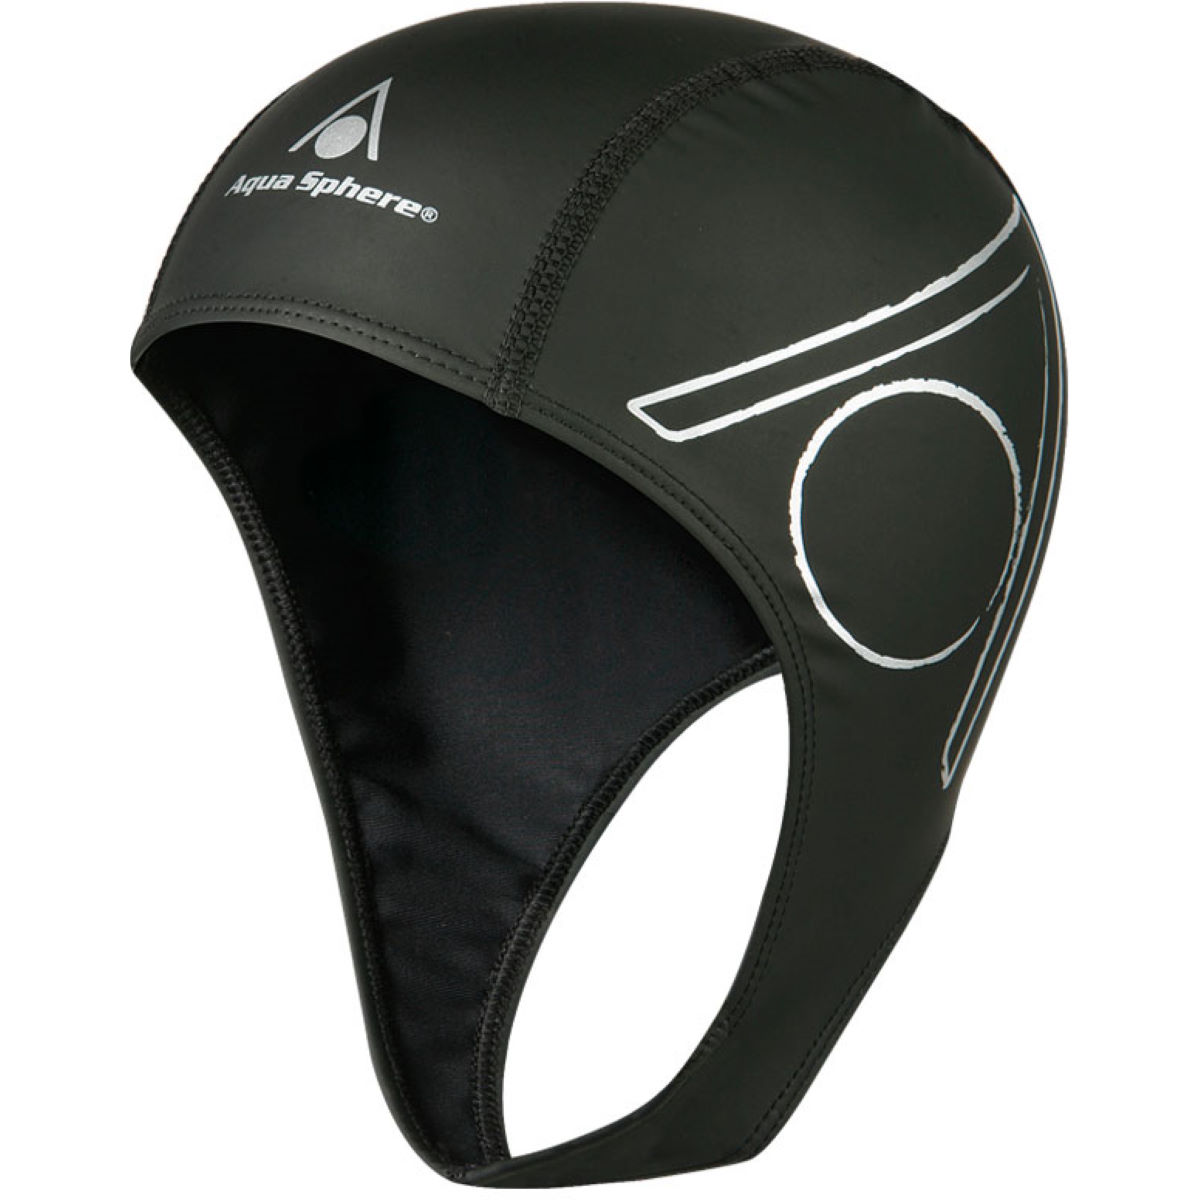 Aqua Sphere Speed Durable Thermal Silicone Swimming Cap